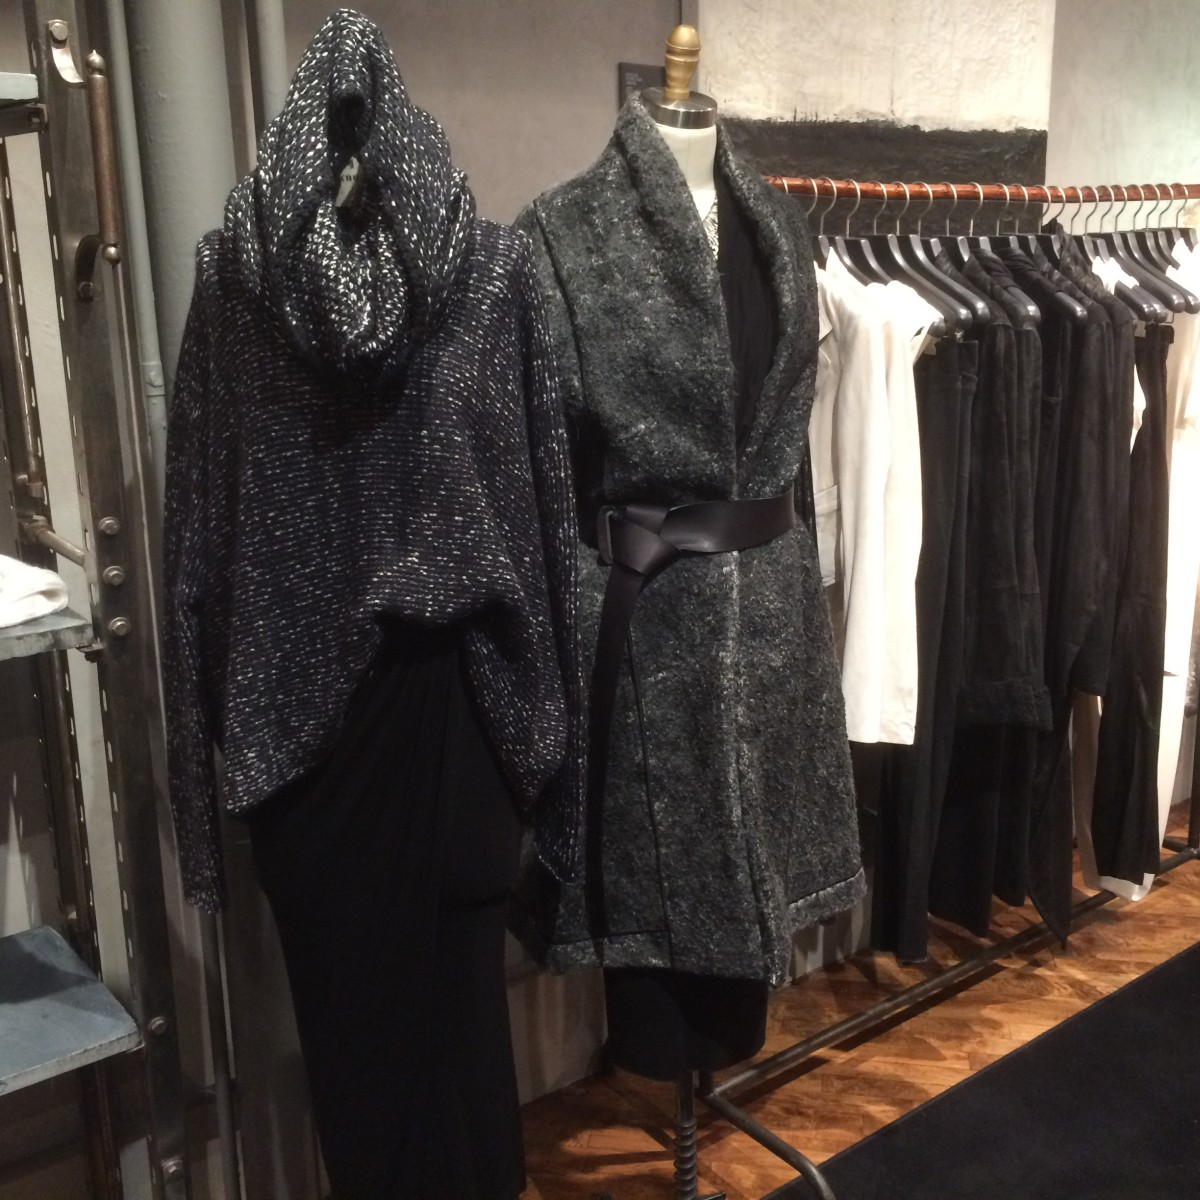 Donna Karan clothing at Urban Zen